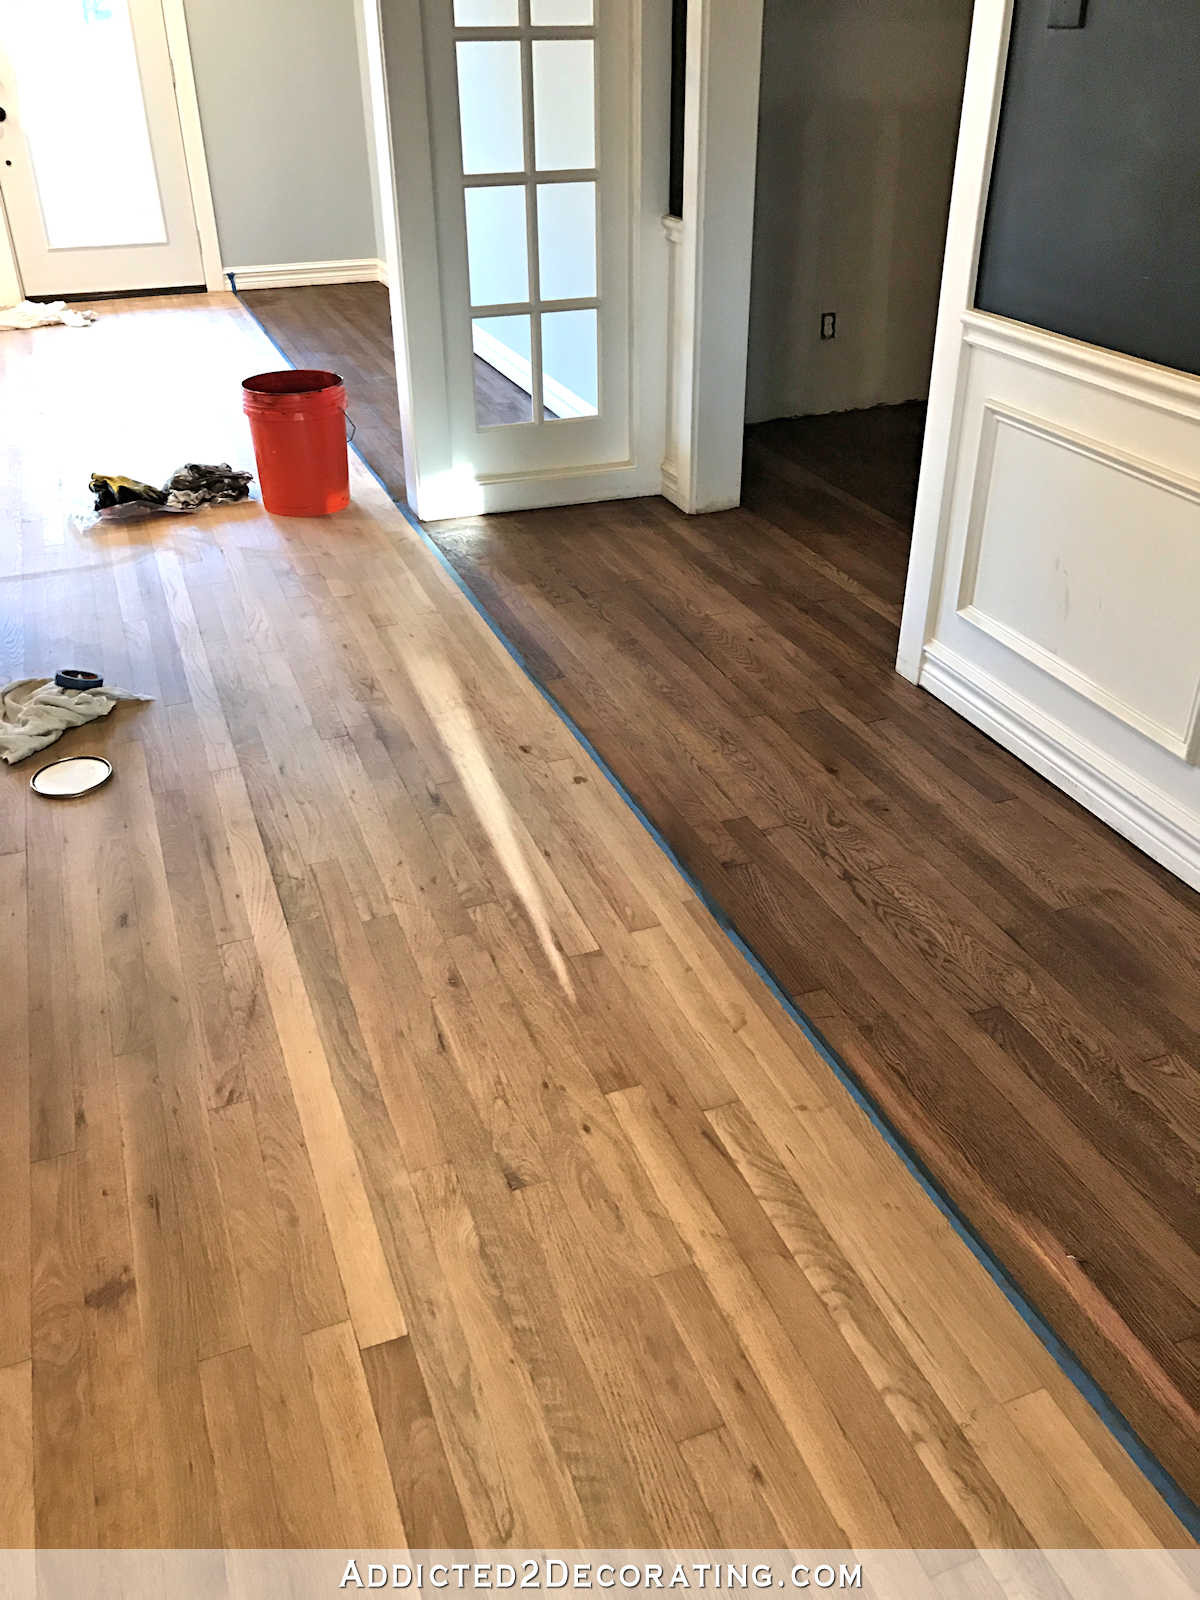 Hardwood Floor Care after Refinishing Of Adventures In Staining My Red Oak Hardwood Floors Products Process with Regard to Staining Red Oak Hardwood Floors 6 Stain On Partial Floor In Entryway and Music